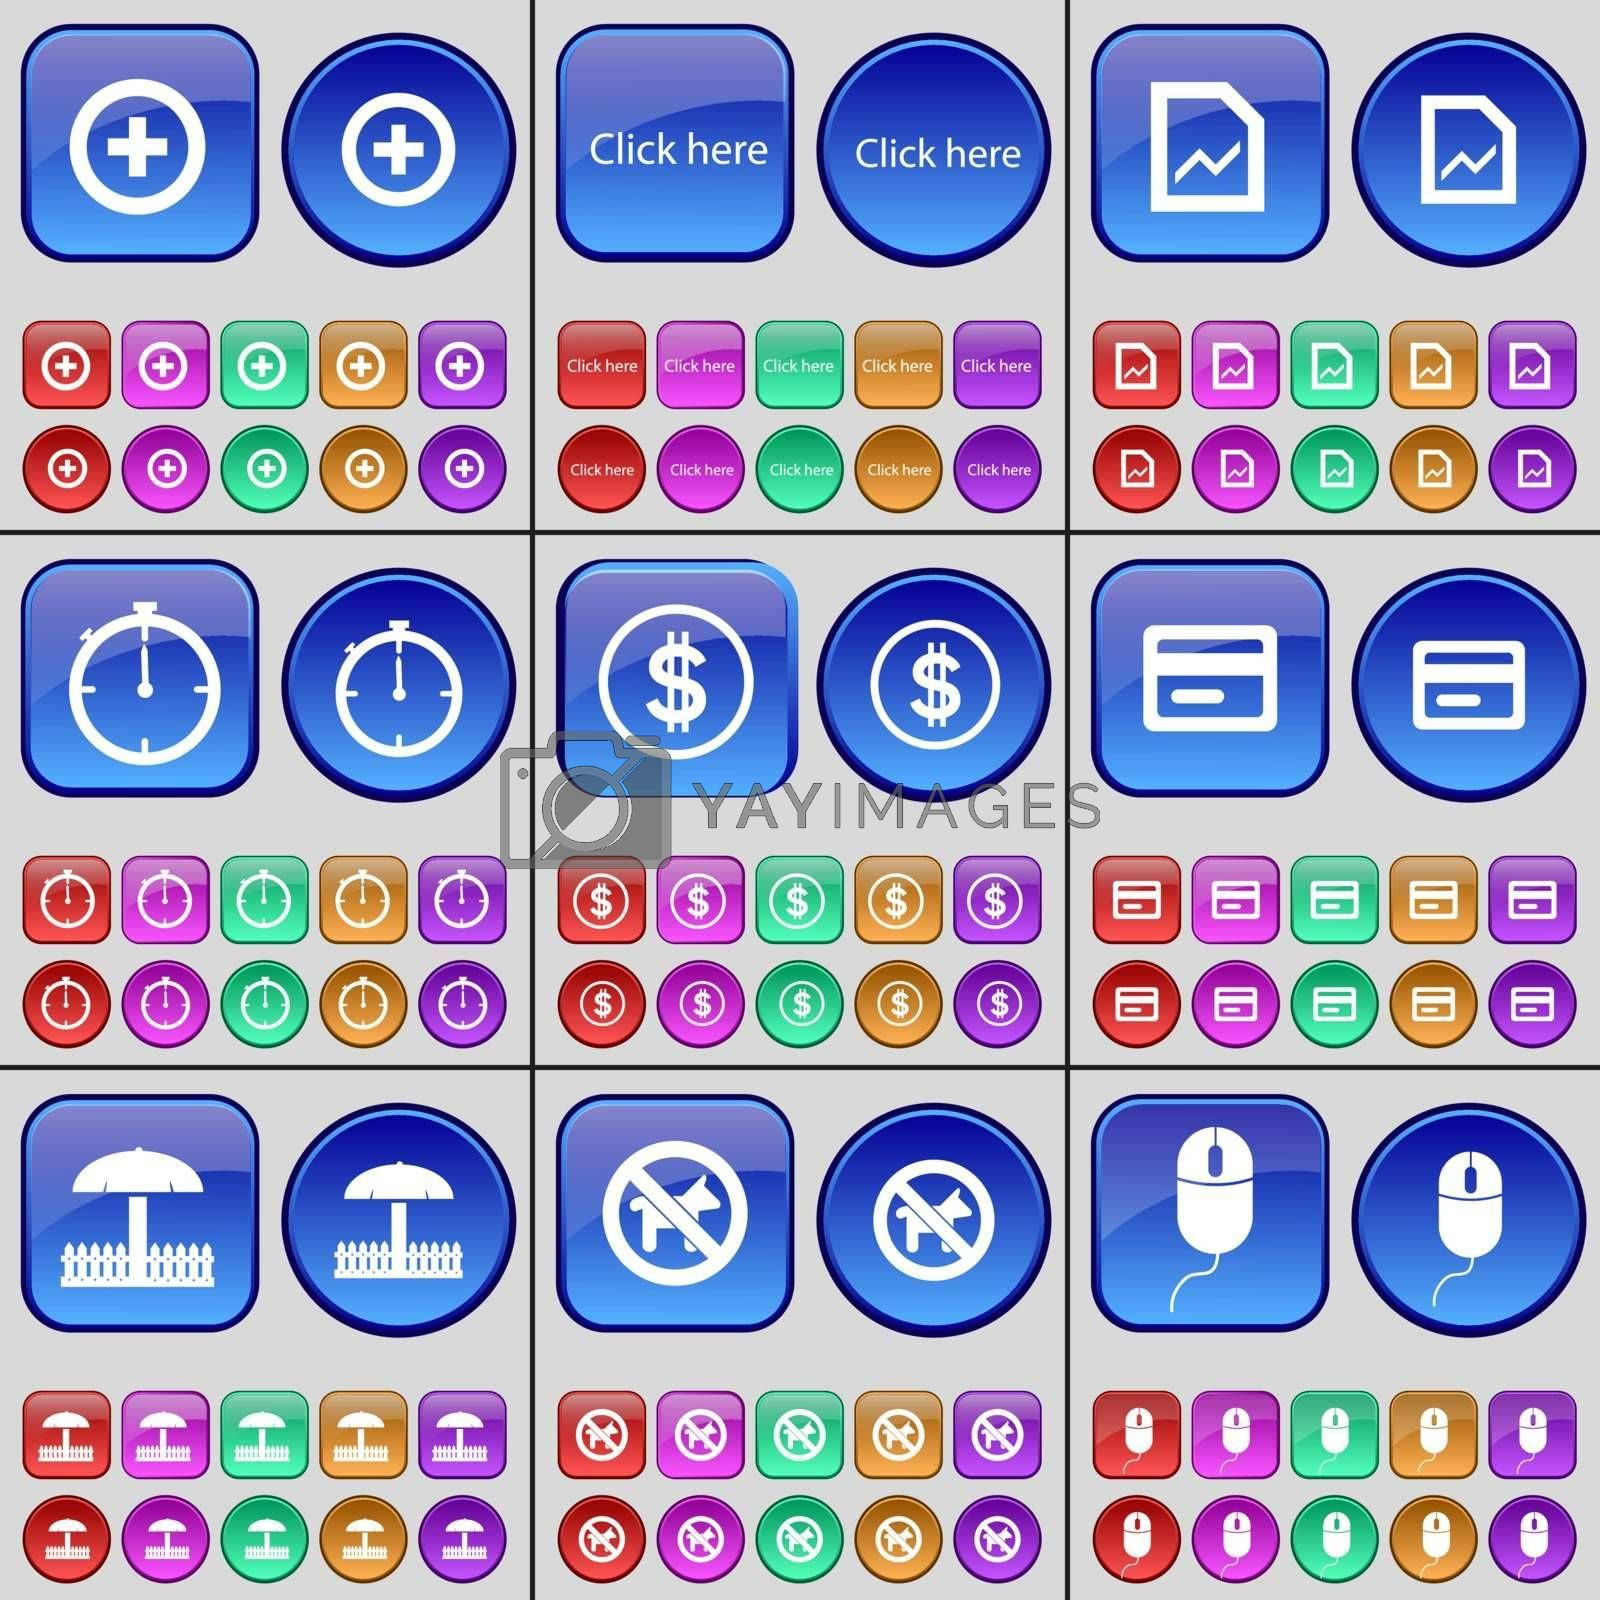 Plus, Clock here, Graph, Stopwatch, Dollar, Credit card, Umbrella, No pets allowed, Mouse. A large set of multi-colored buttons. Vector illustration